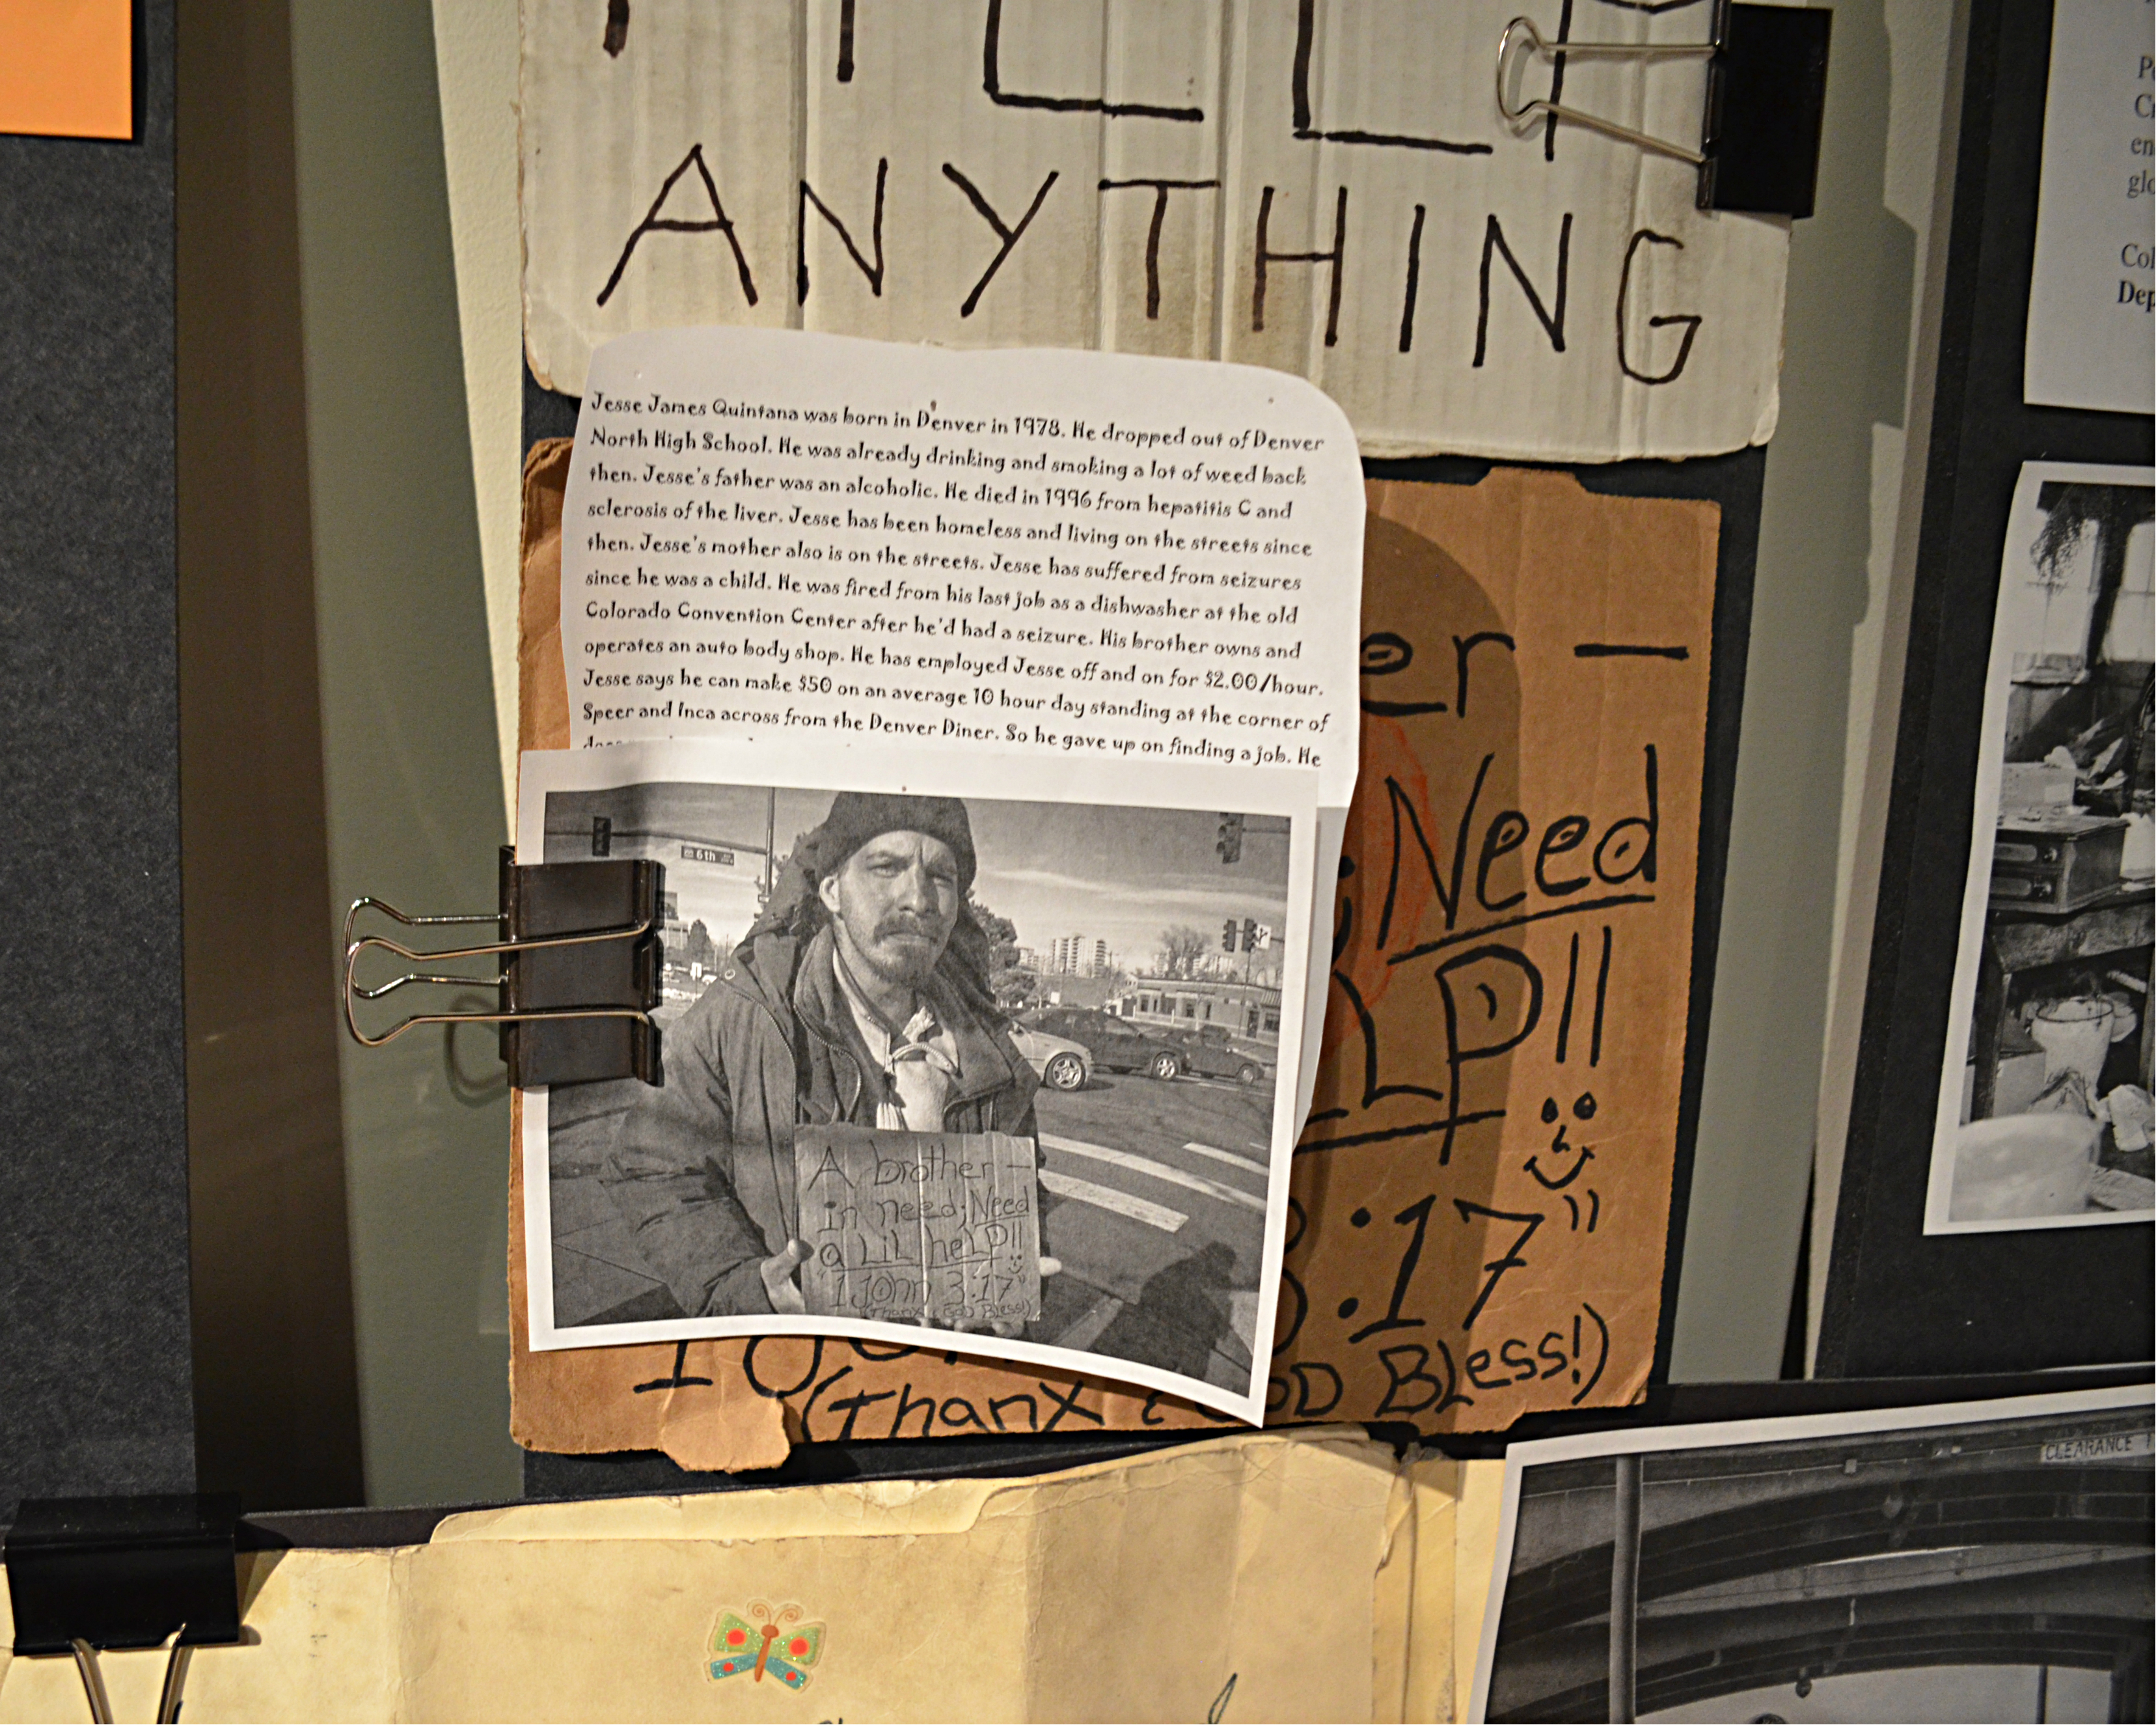 <p>In addition to signs, the draft display includes photos and stories of some of the homeless population in Denver.</p>